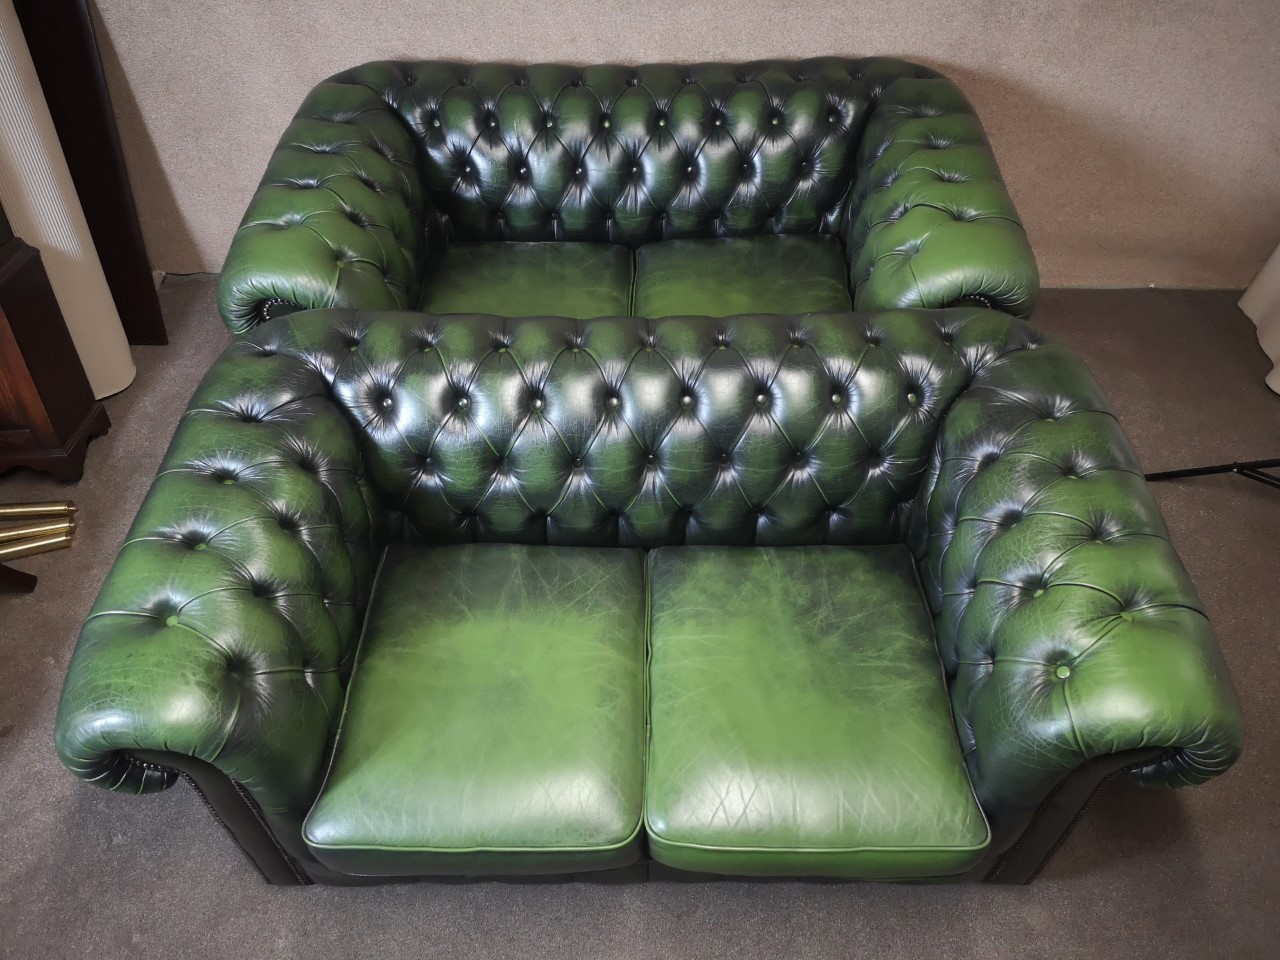 Pair of green leather Chesterfield sofas画像